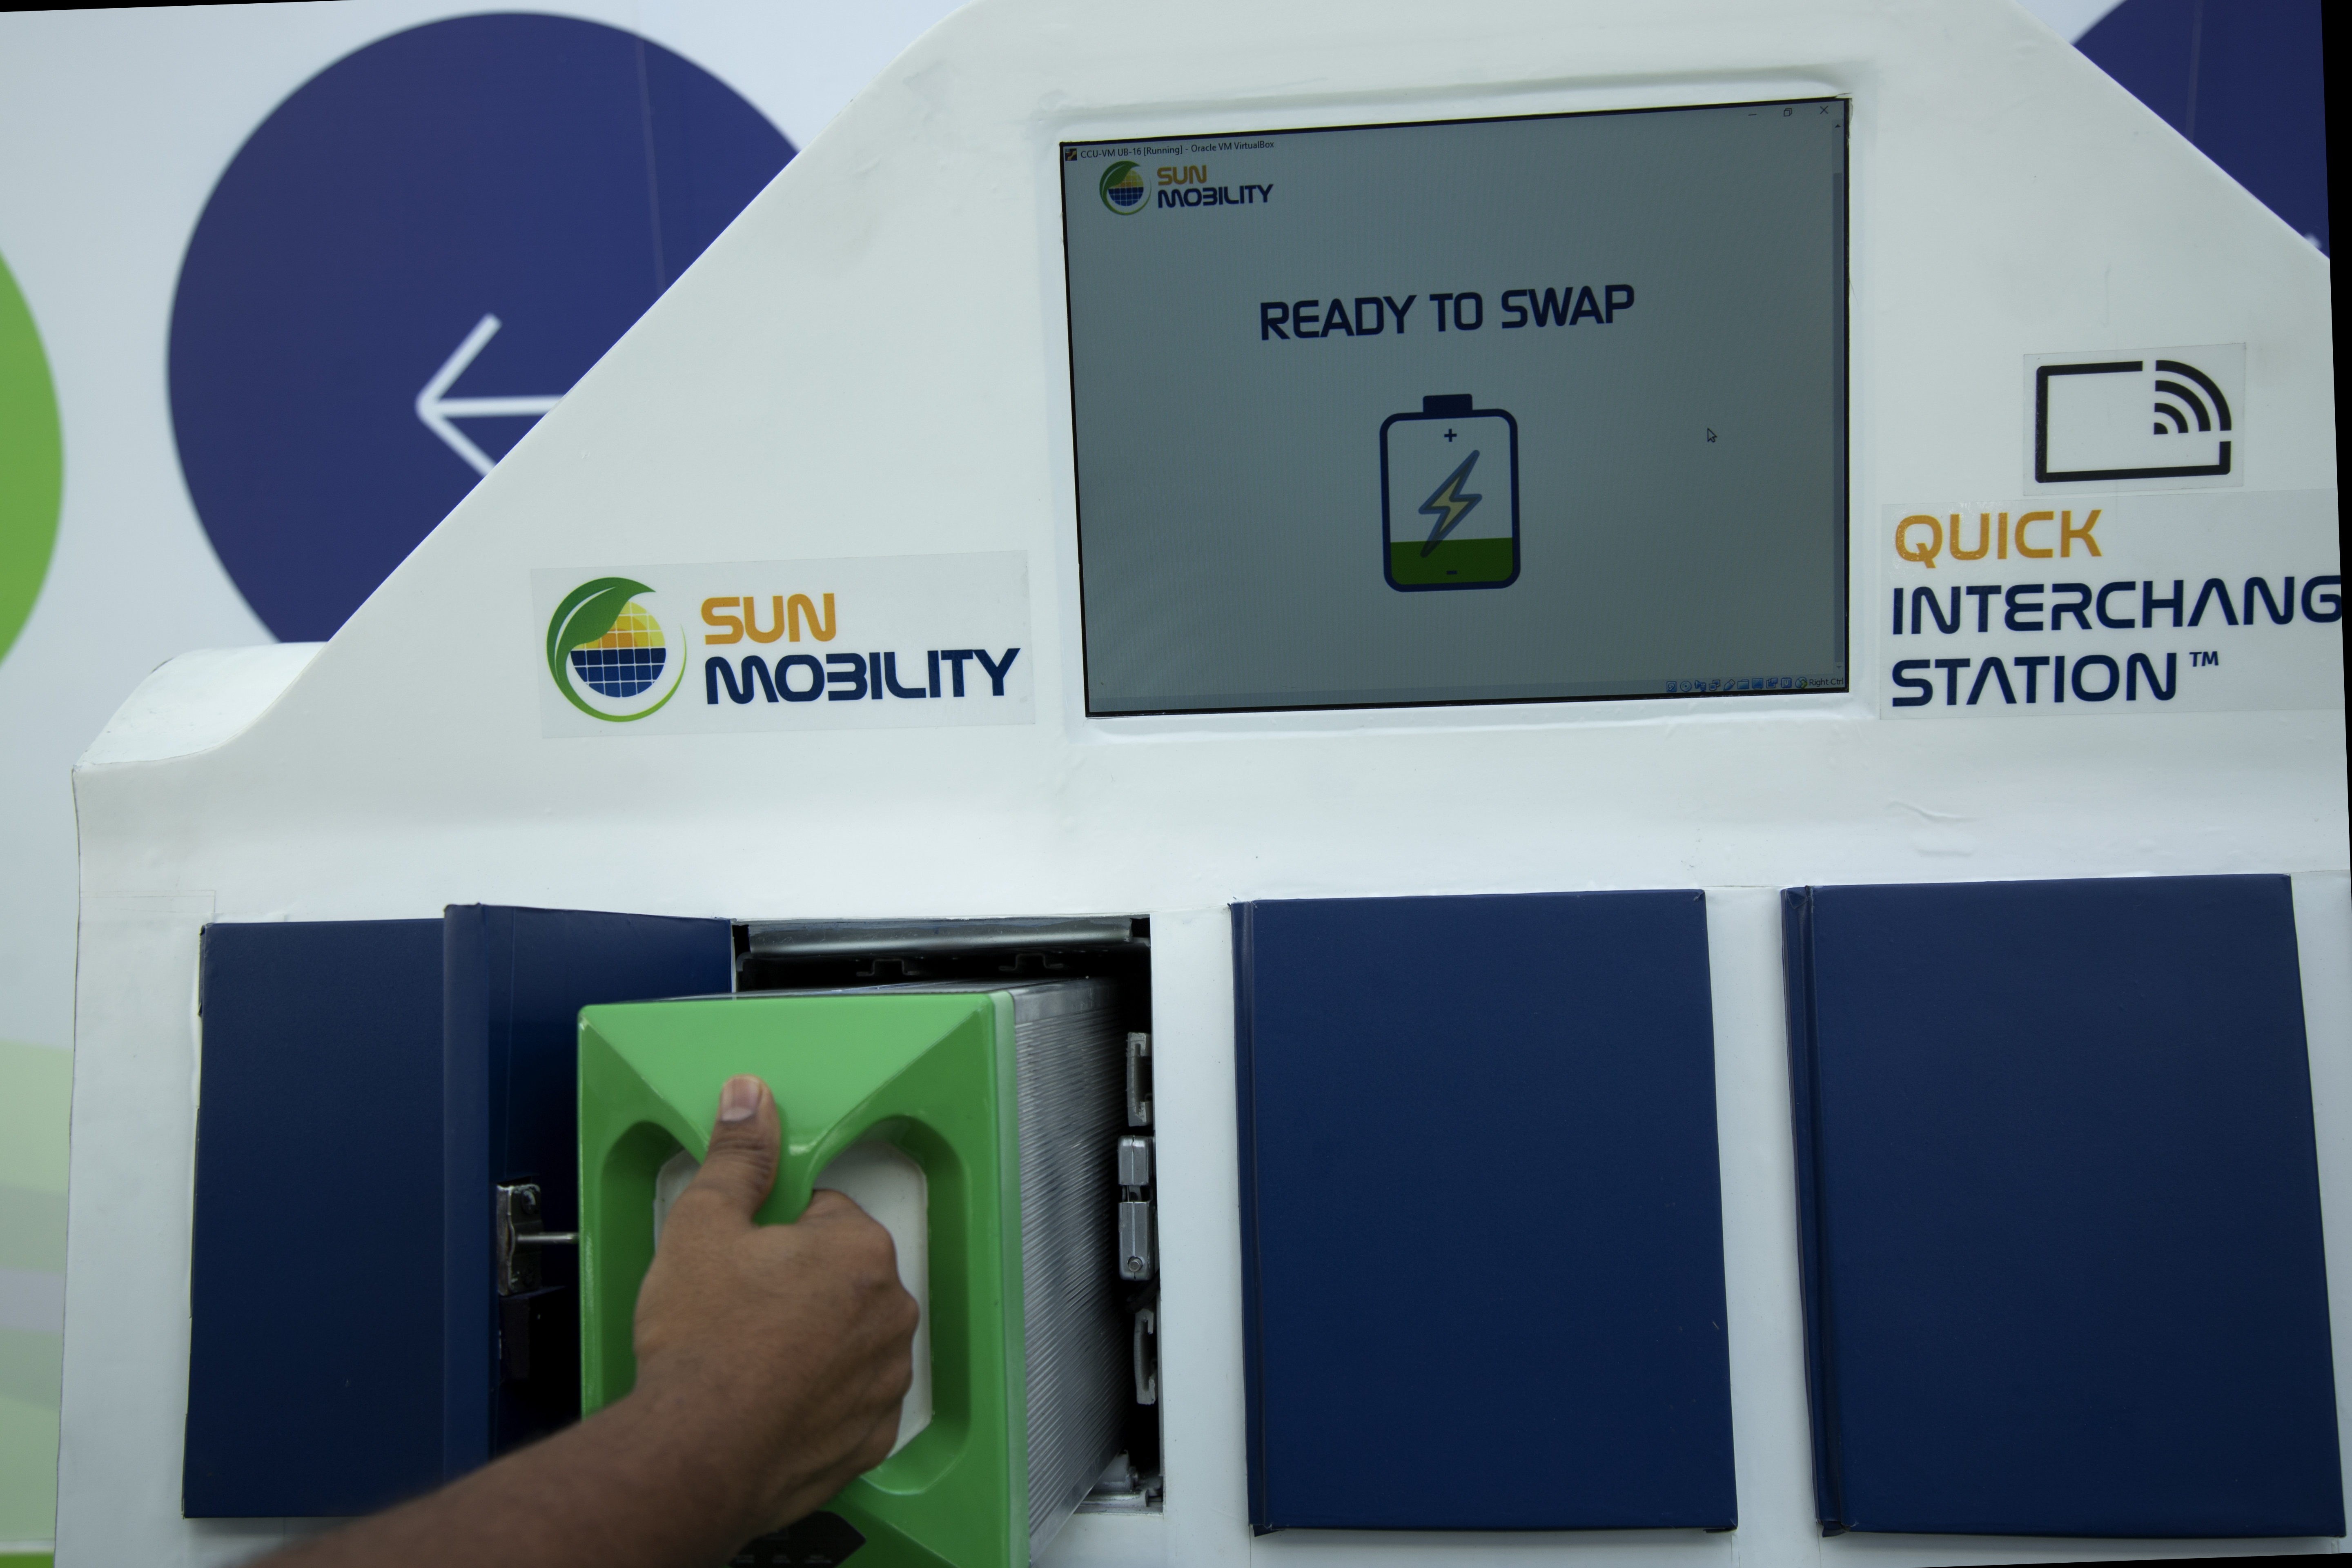 SUN Mobility brings a globally inter-operable battery